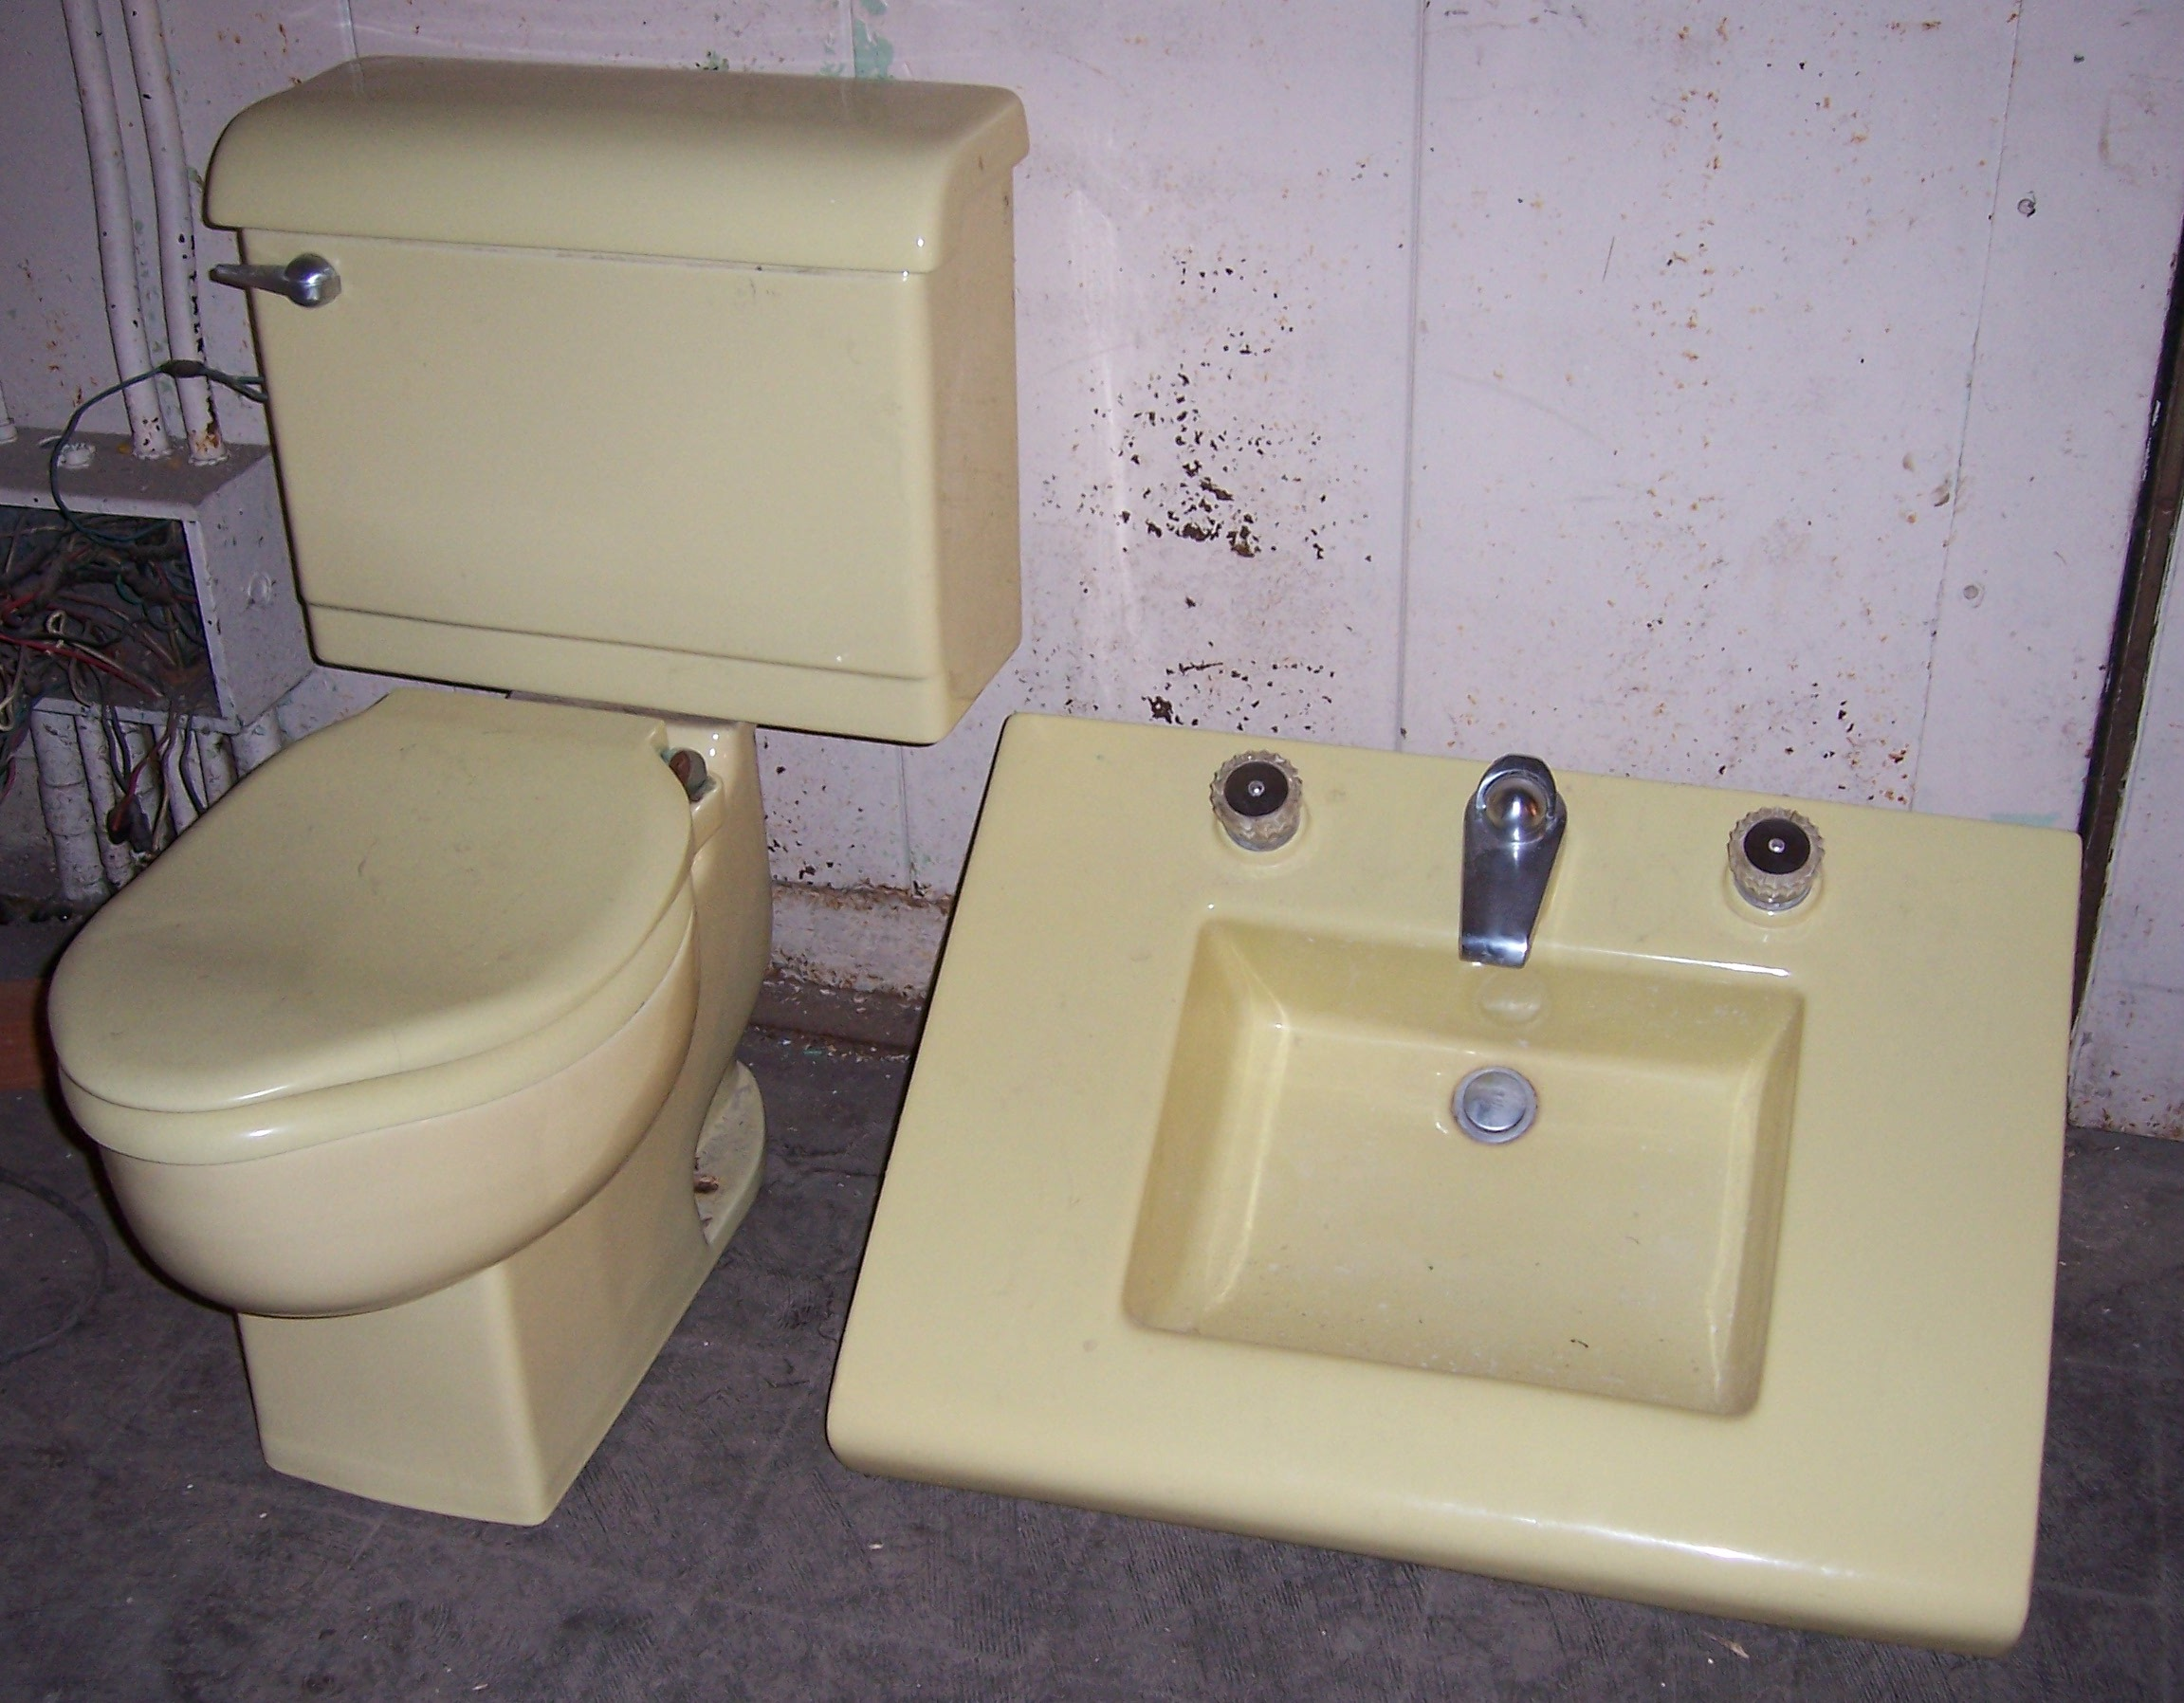 antique kitchen sinks benches with storage colored suites | vintagebathroom